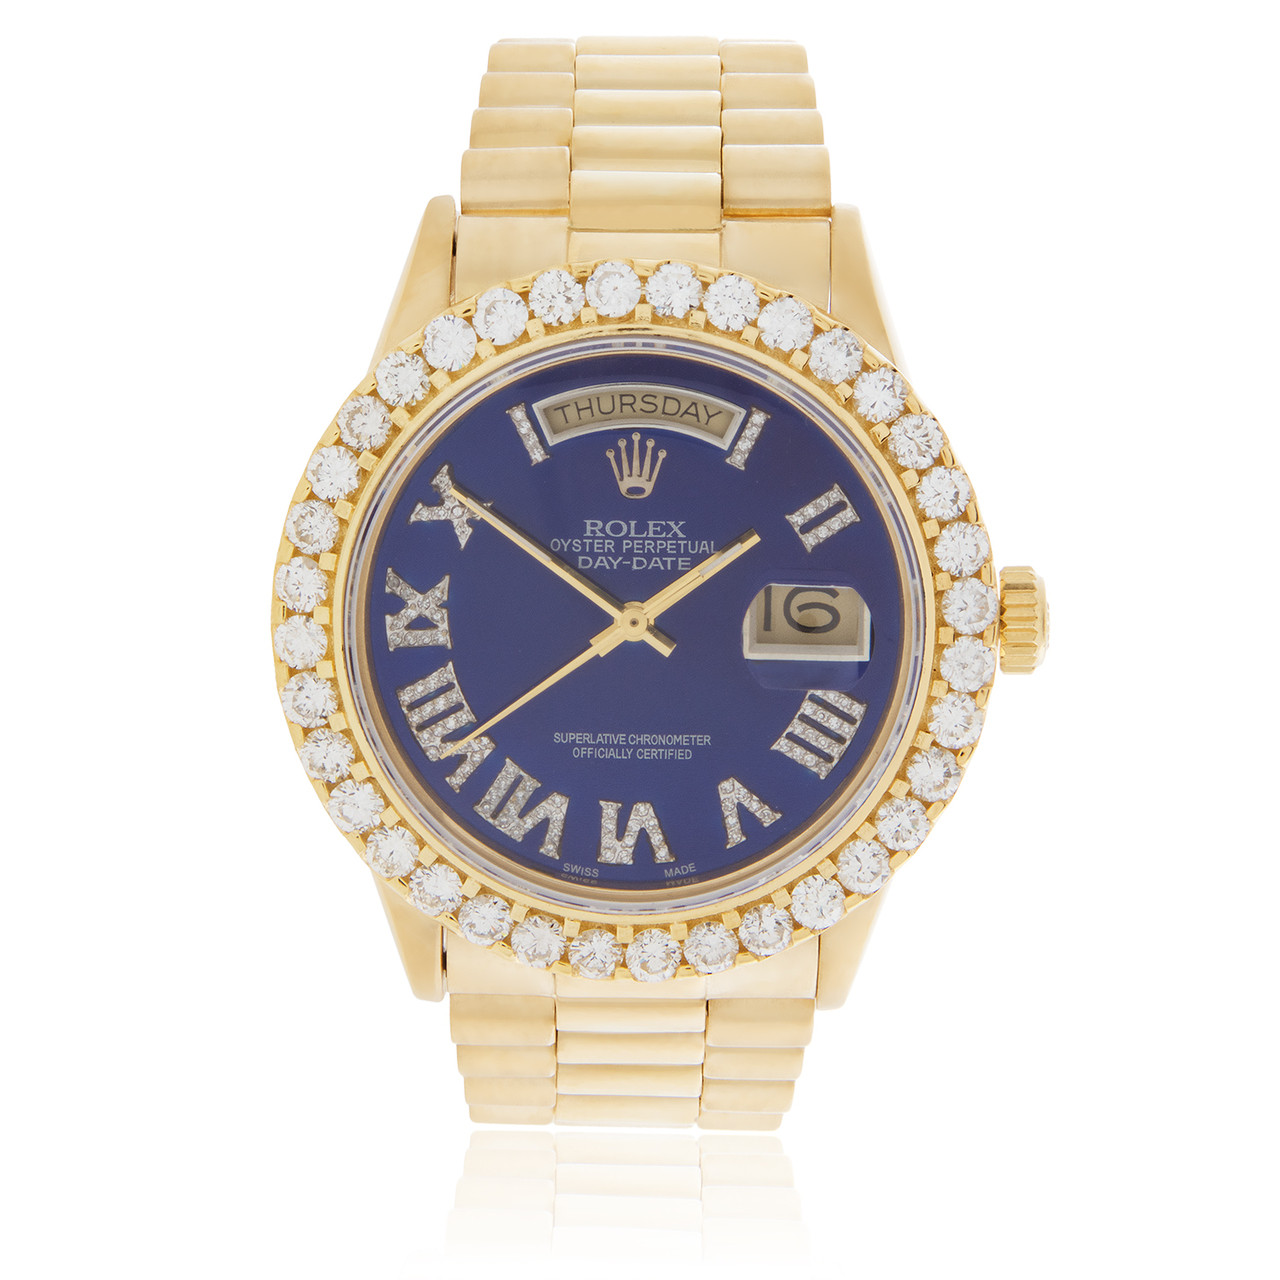 Rolex Day Date 18k Yellow Gold President Blue Face 395ct Diamond Automatic Mens Watch